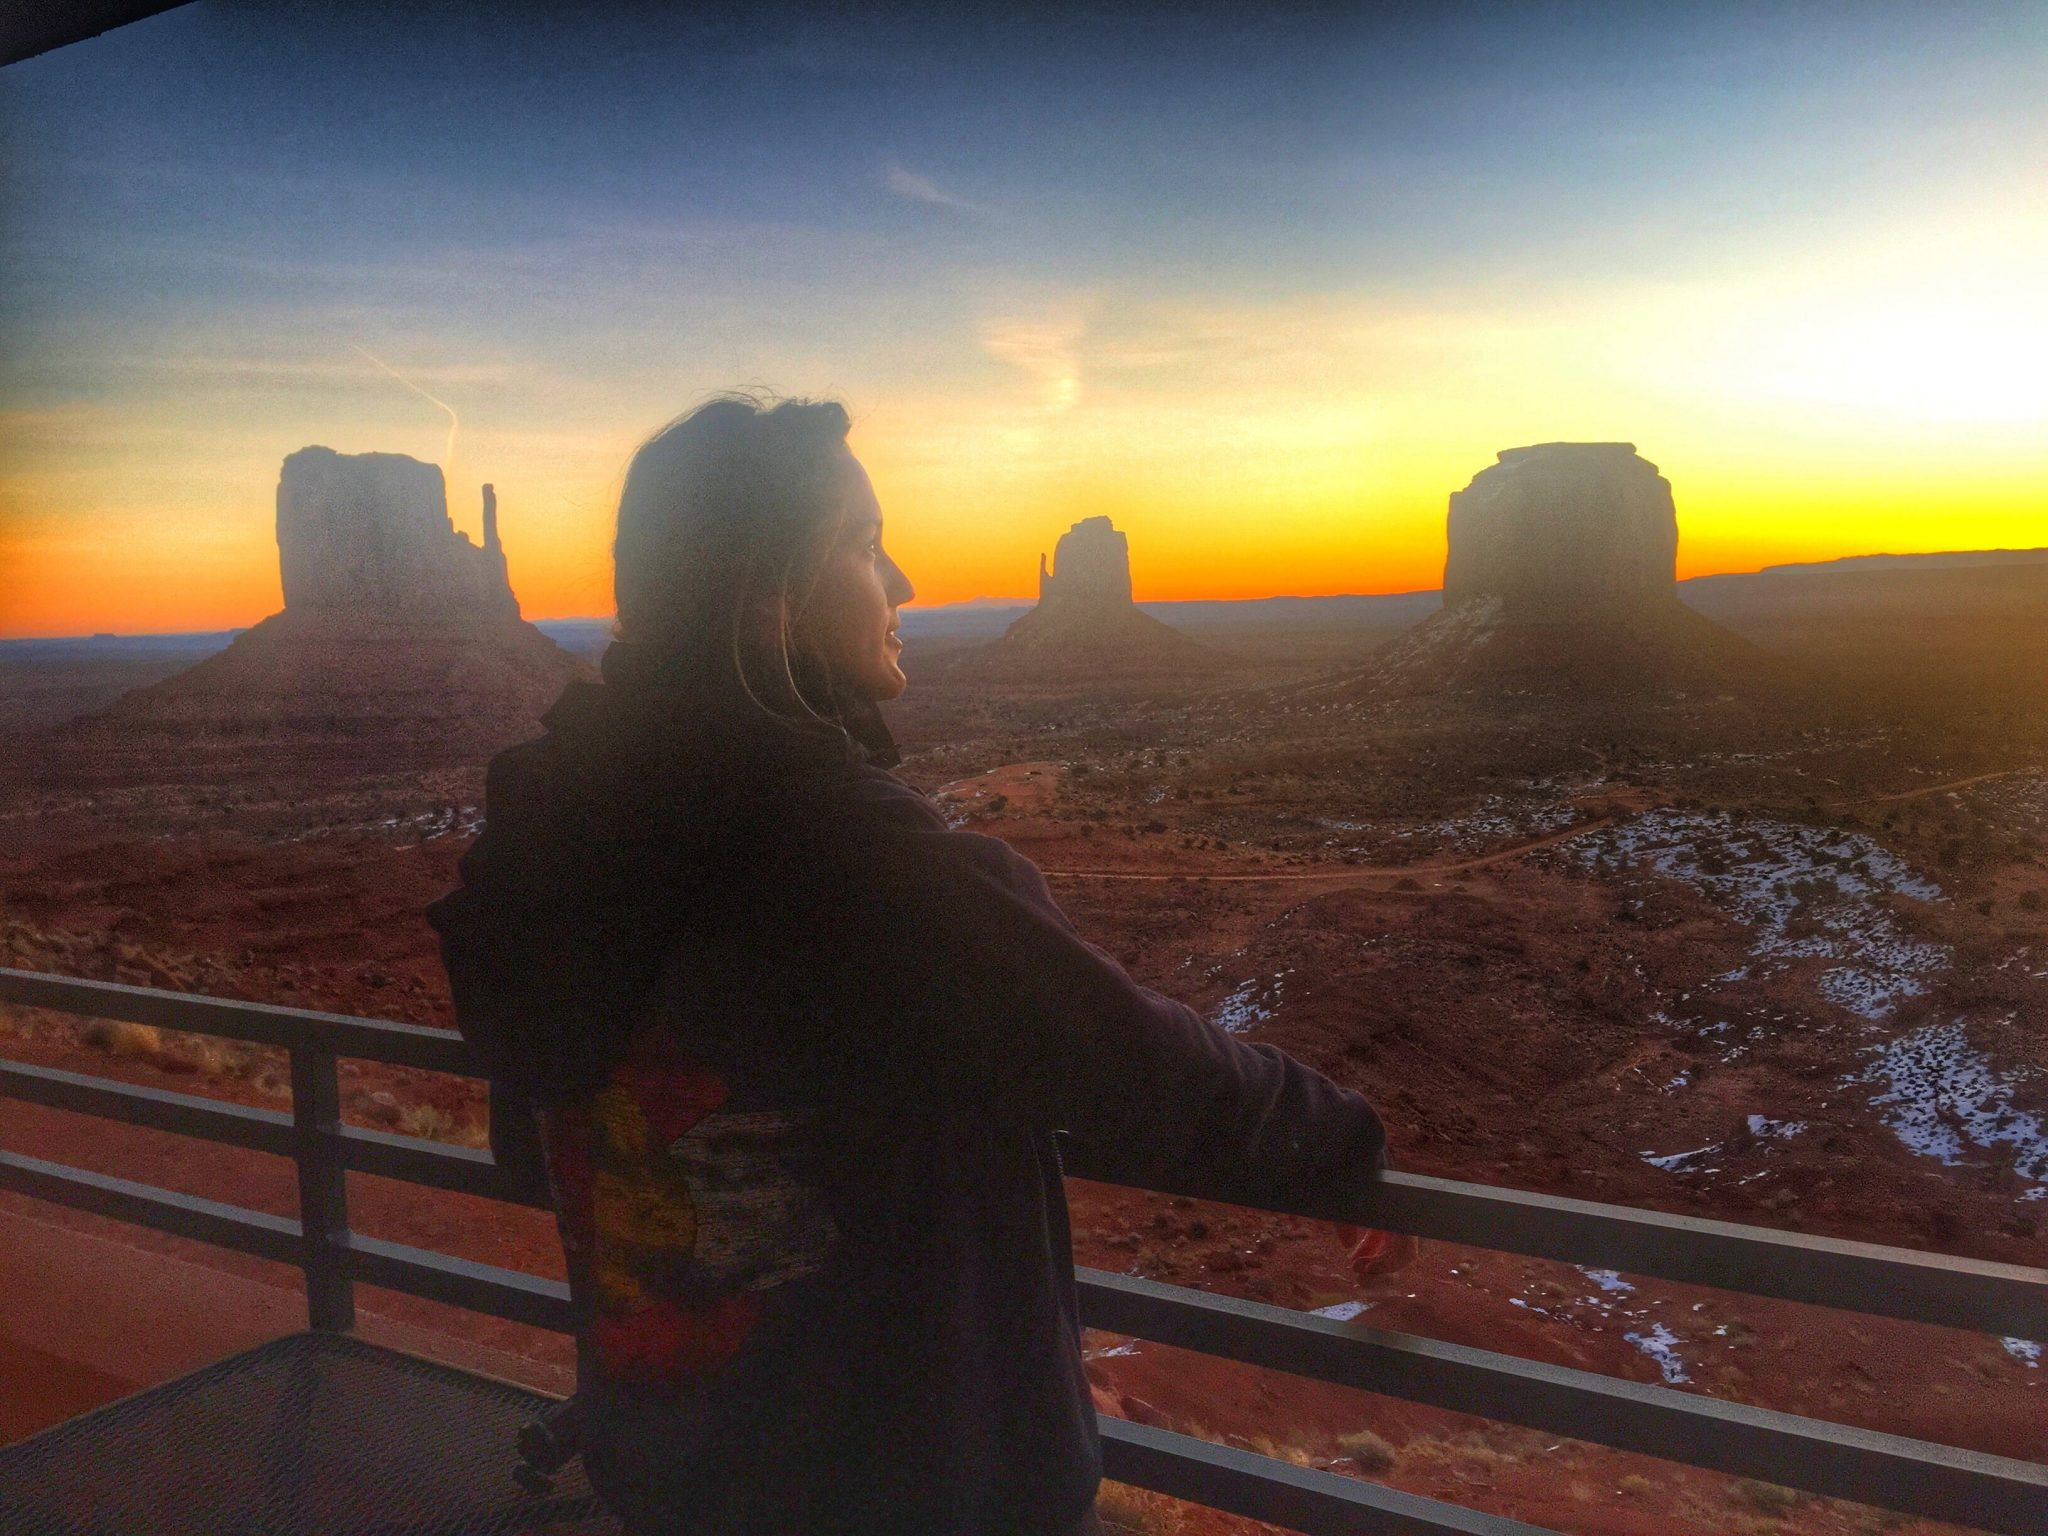 thigns to do in monument valley